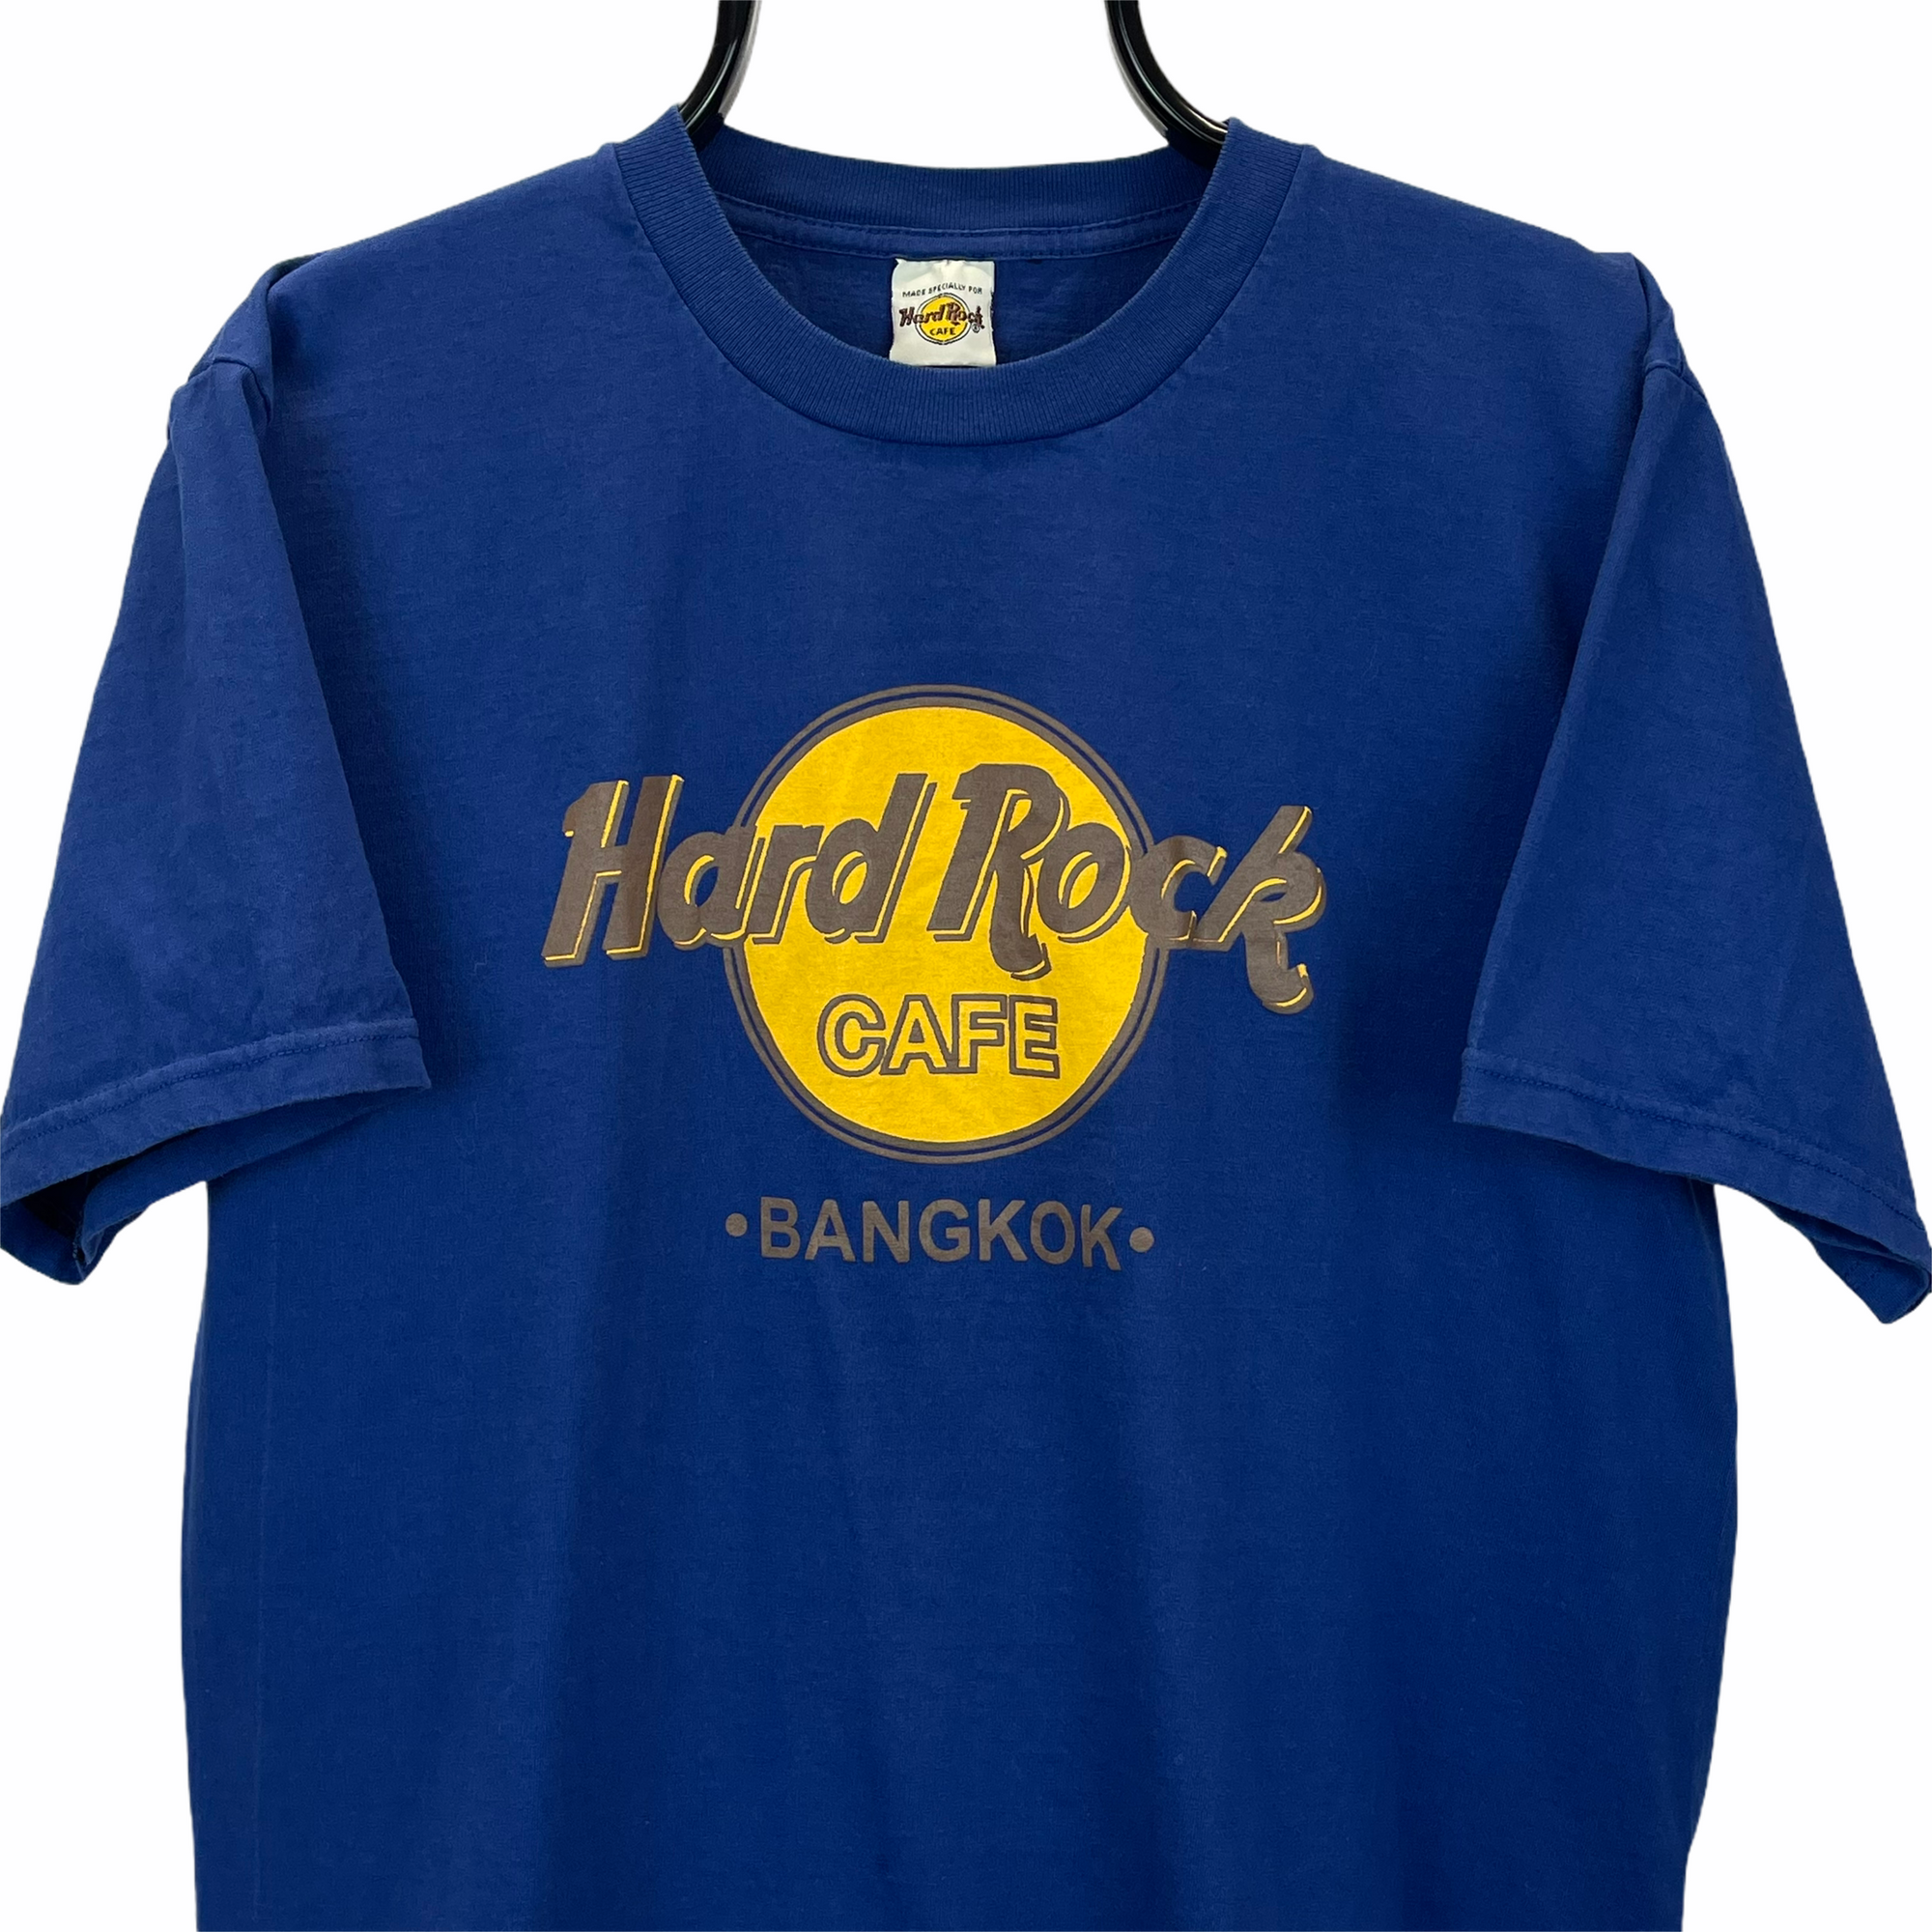 VINTAGE 90S HARD ROCK CAFE BANGKOK TEE - MEN'S LARGE/WOMEN'S XL